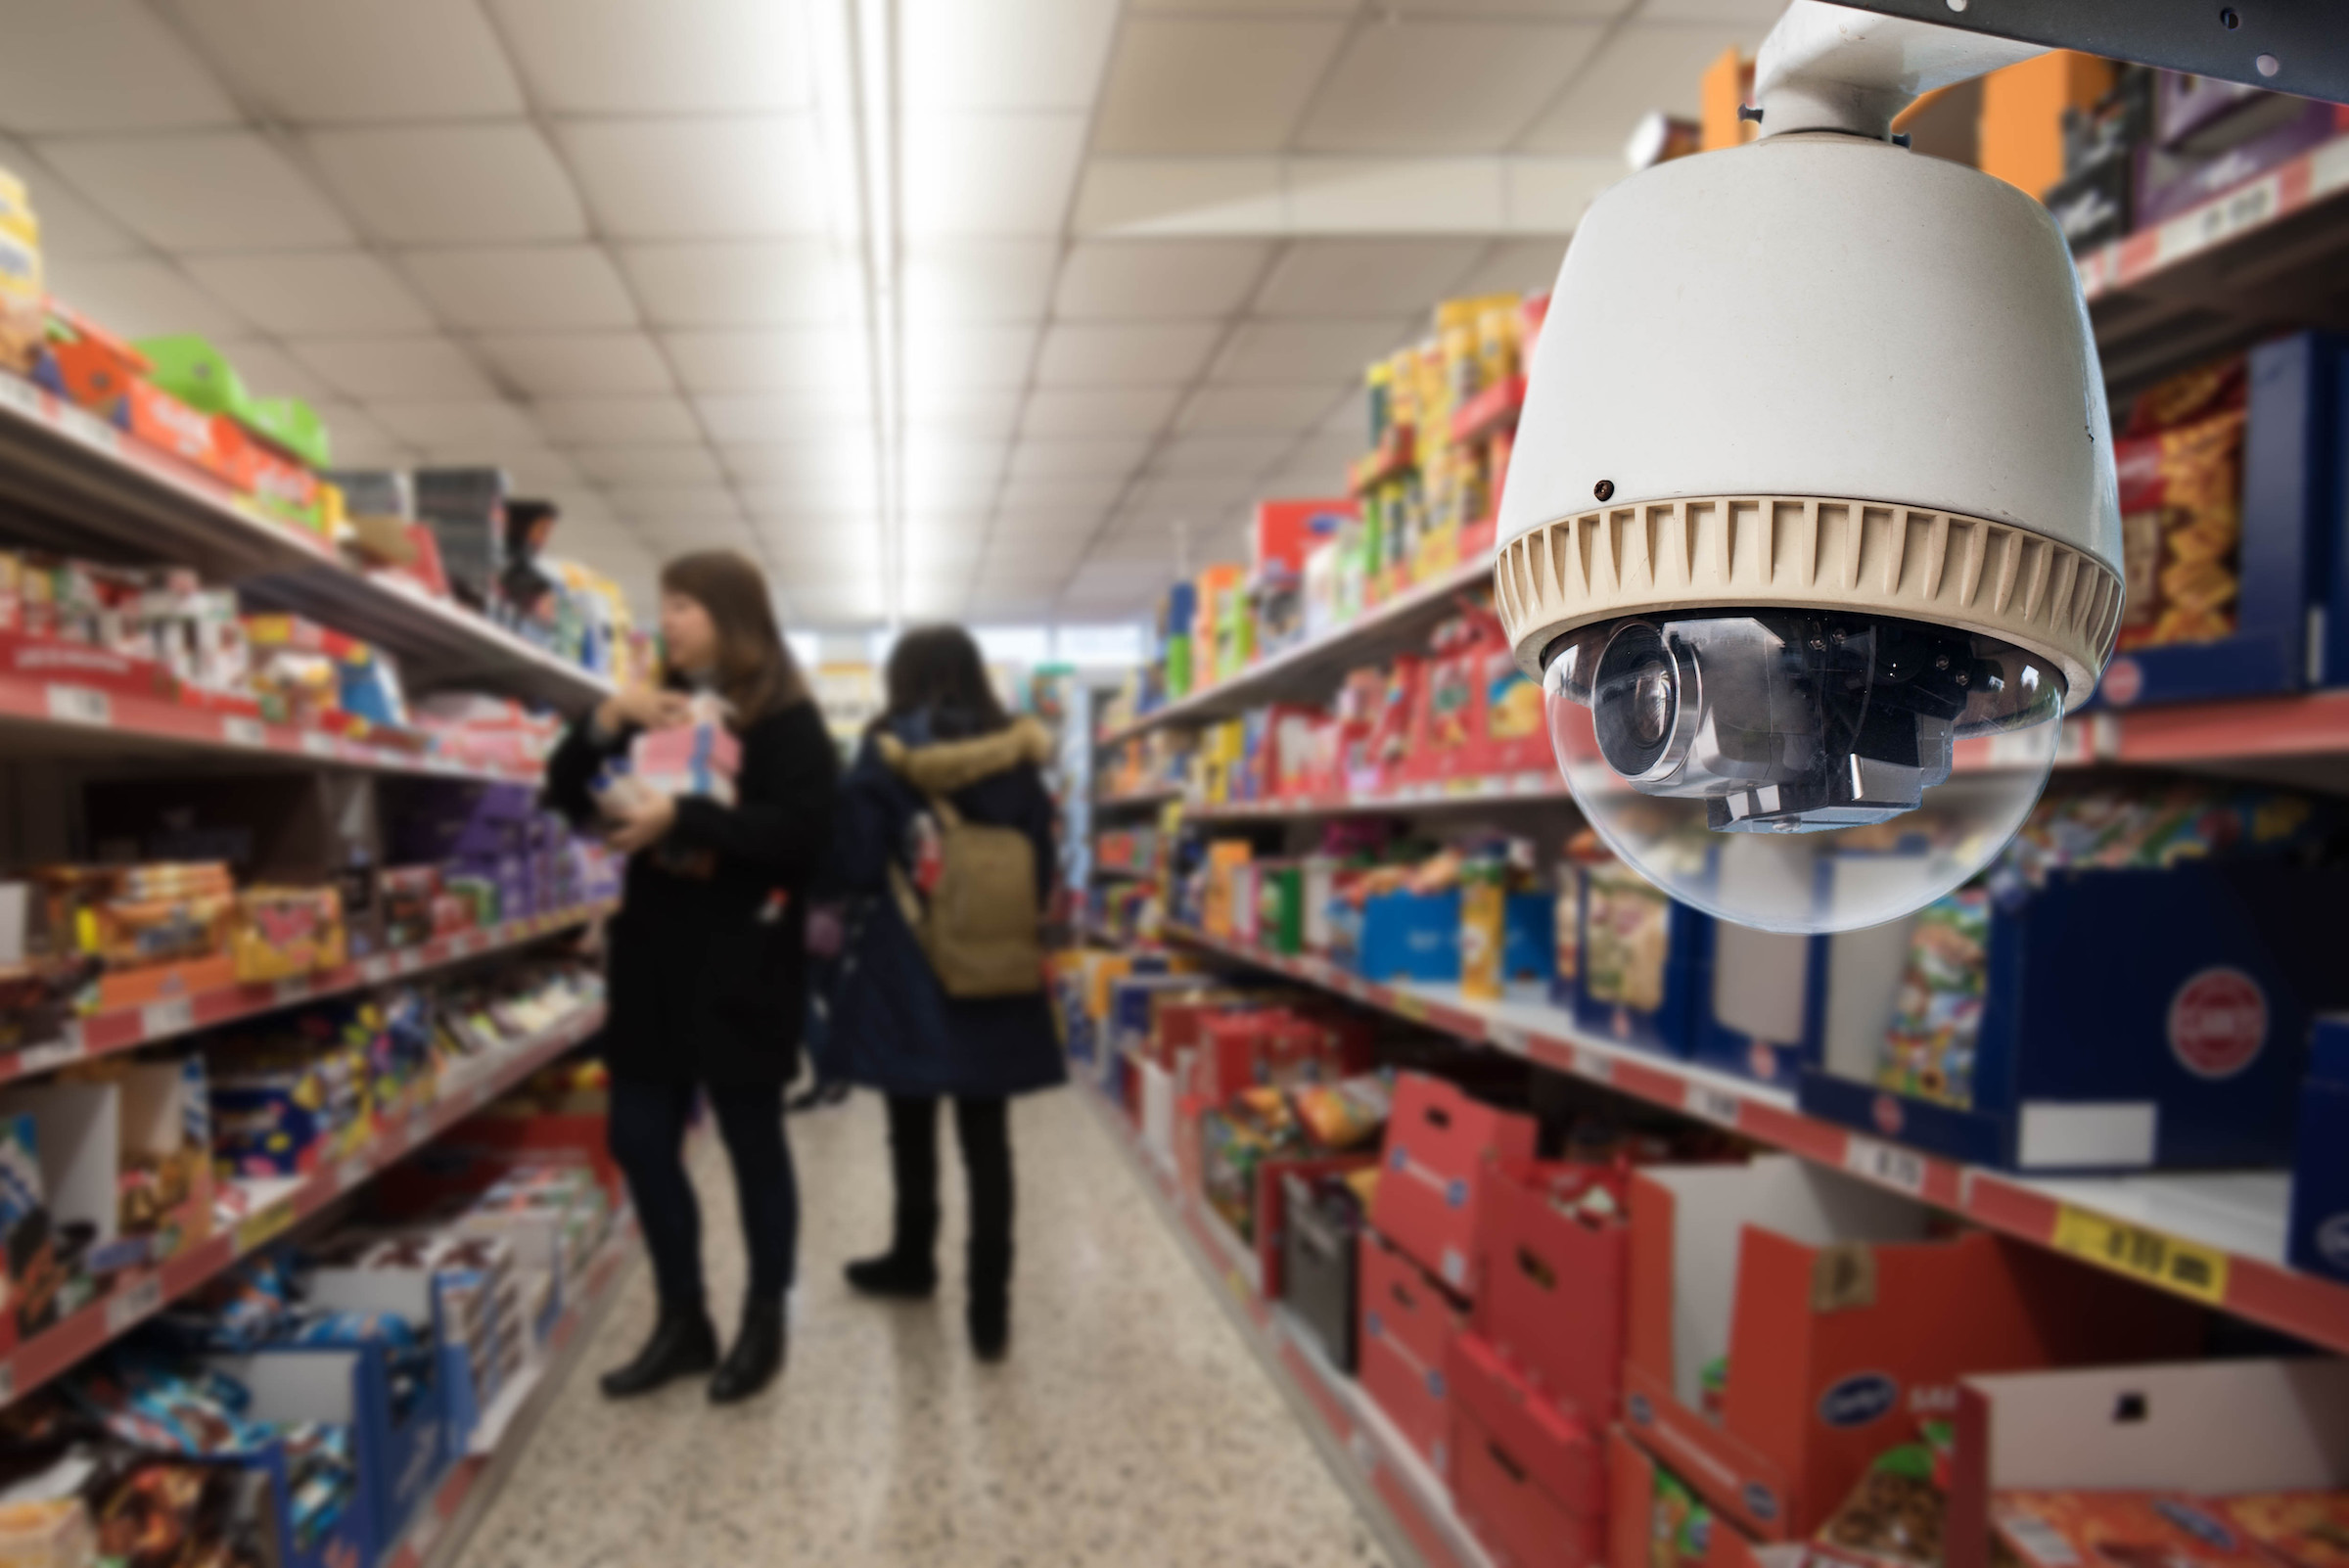 Security Camera Monitoring Shoppers in Grocery Store